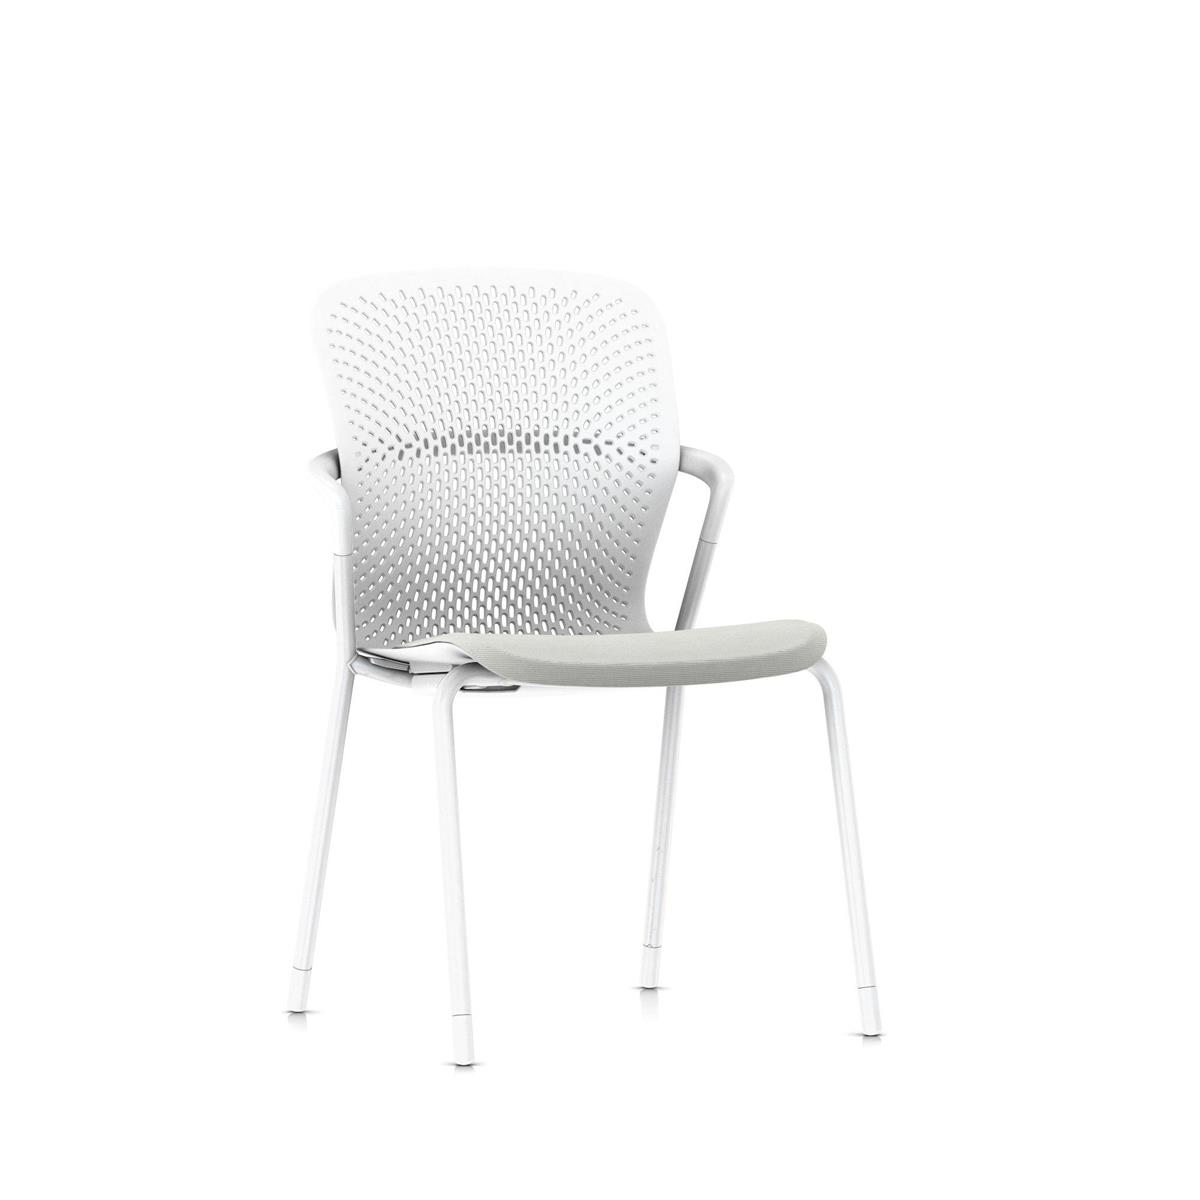 Keyn 4 Leg Chair - Studio White med Camira Sprint tekstil og glidere for teppe